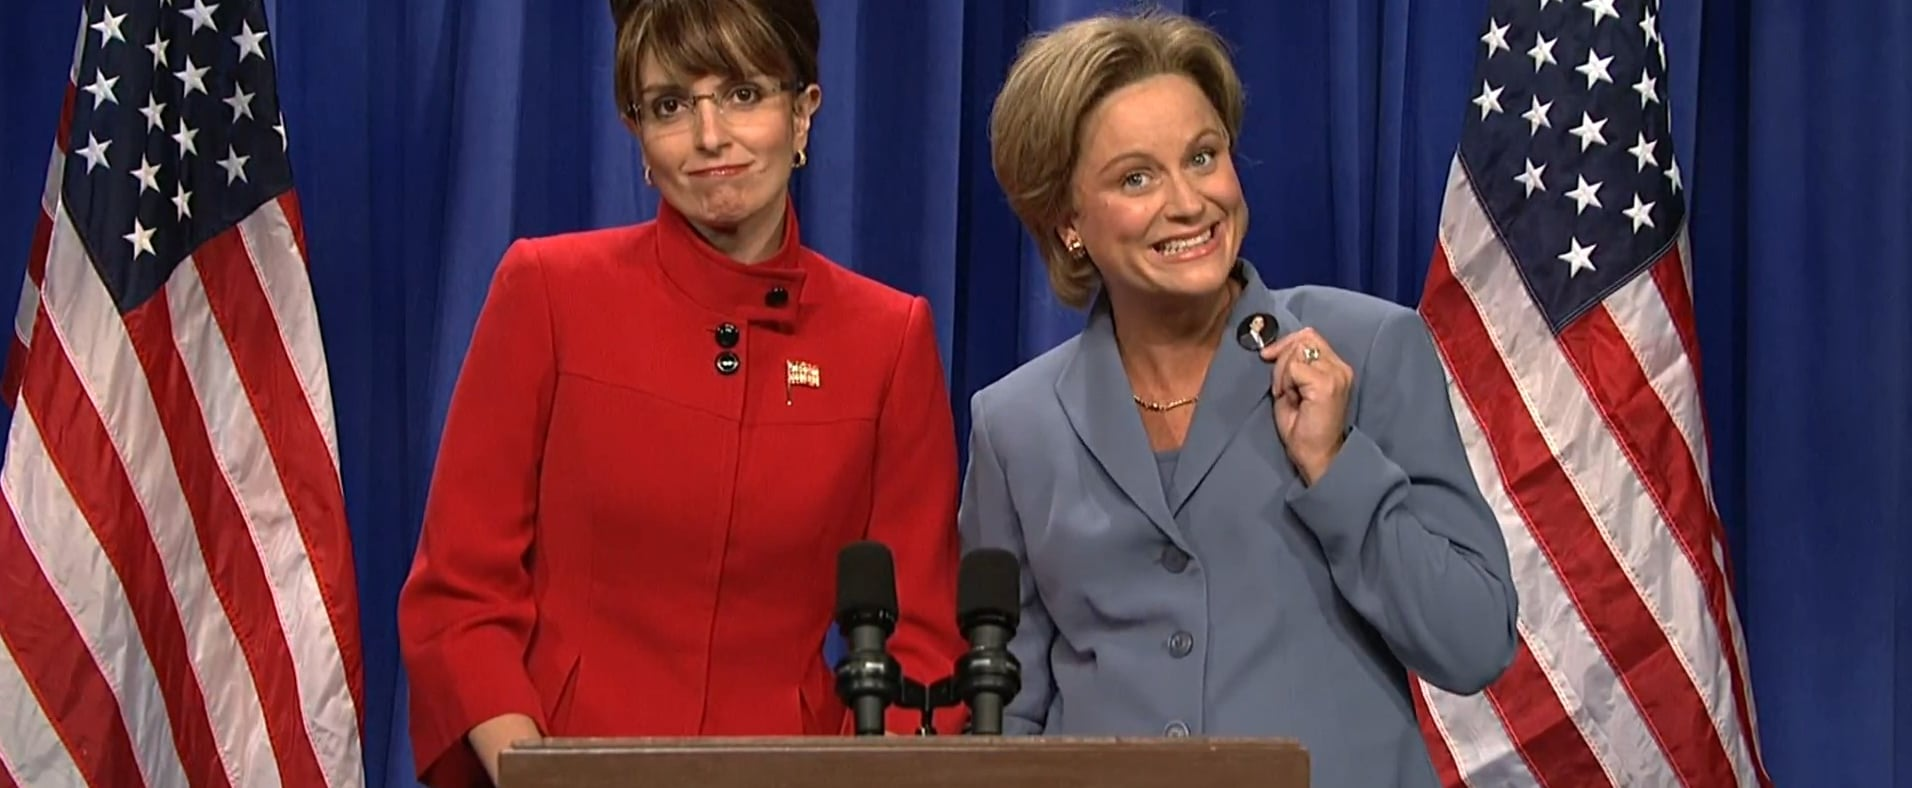 The Best SNL Election Skits of All Time